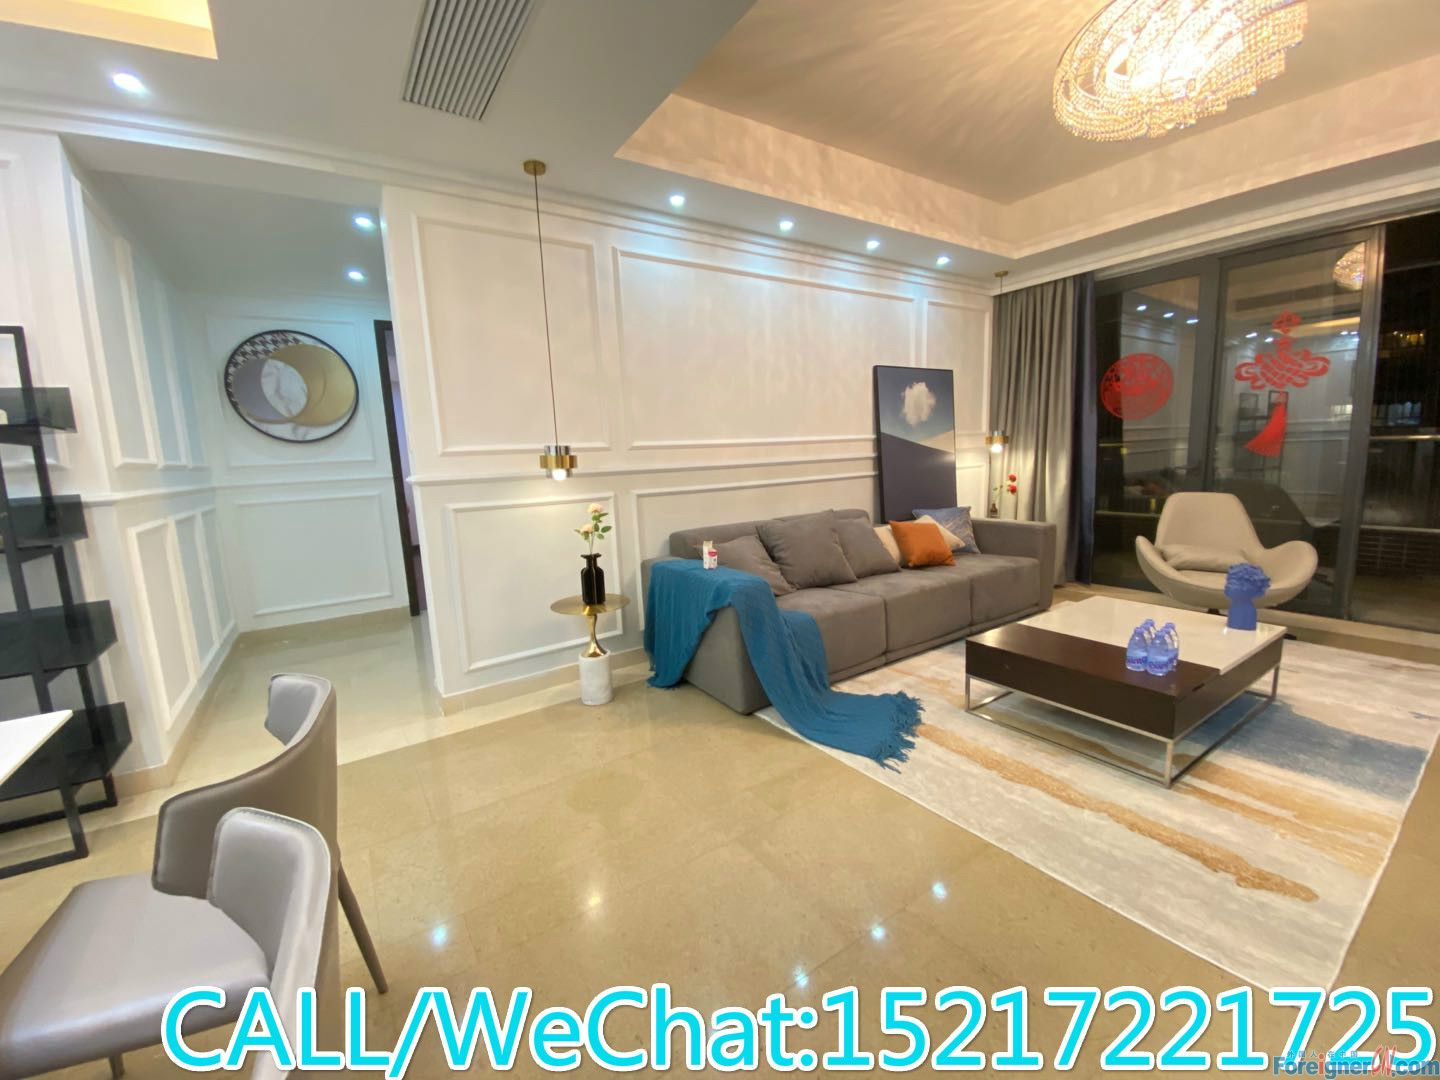 Elegant and Delicate/Large Living Room/High Quality Furnitures/Tidy and Neat/CBD AREA.